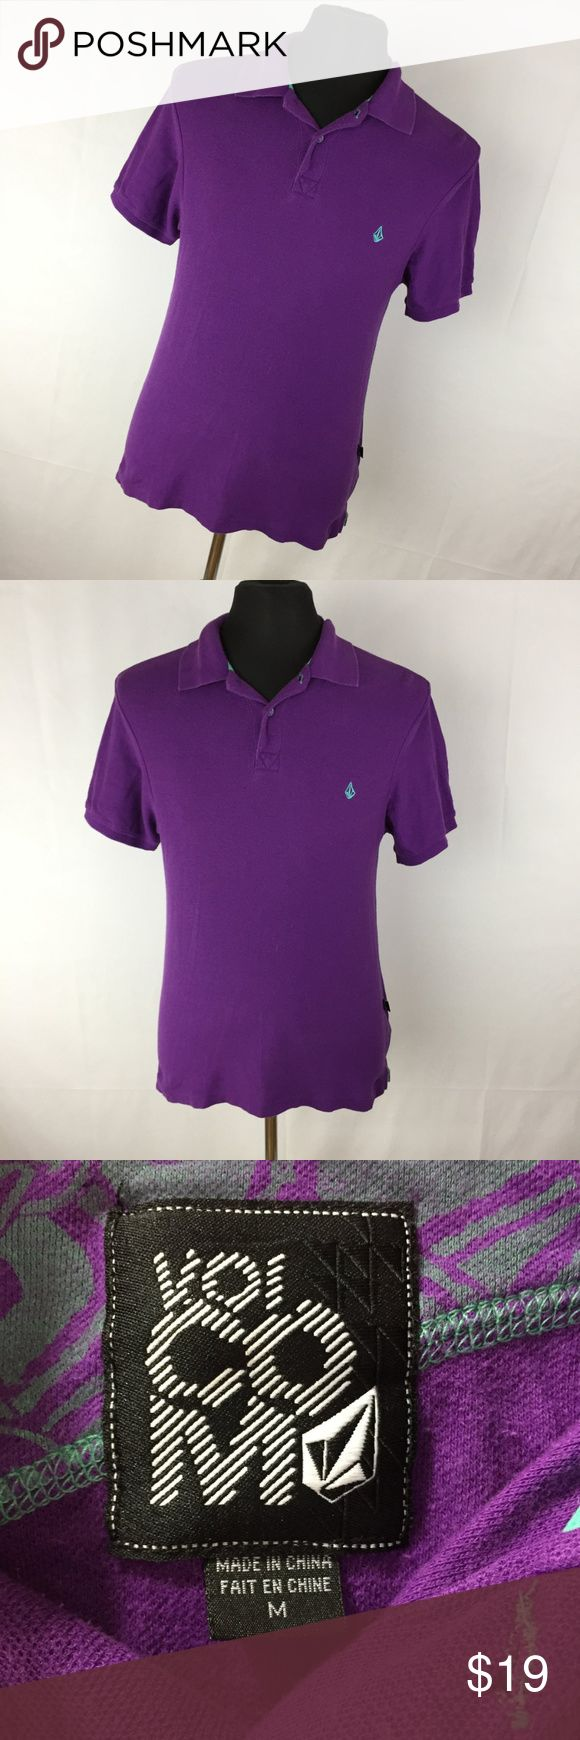 """Volcom Purple Polo Shirt M Medium Embroidered Logo This is a great classic style polo with the logo on the front.  Chest - 42"""" Length - 28""""  Excellent condition!  Free from flaws!  Smoke free home!  (H7) Volcom Shirts Polos"""